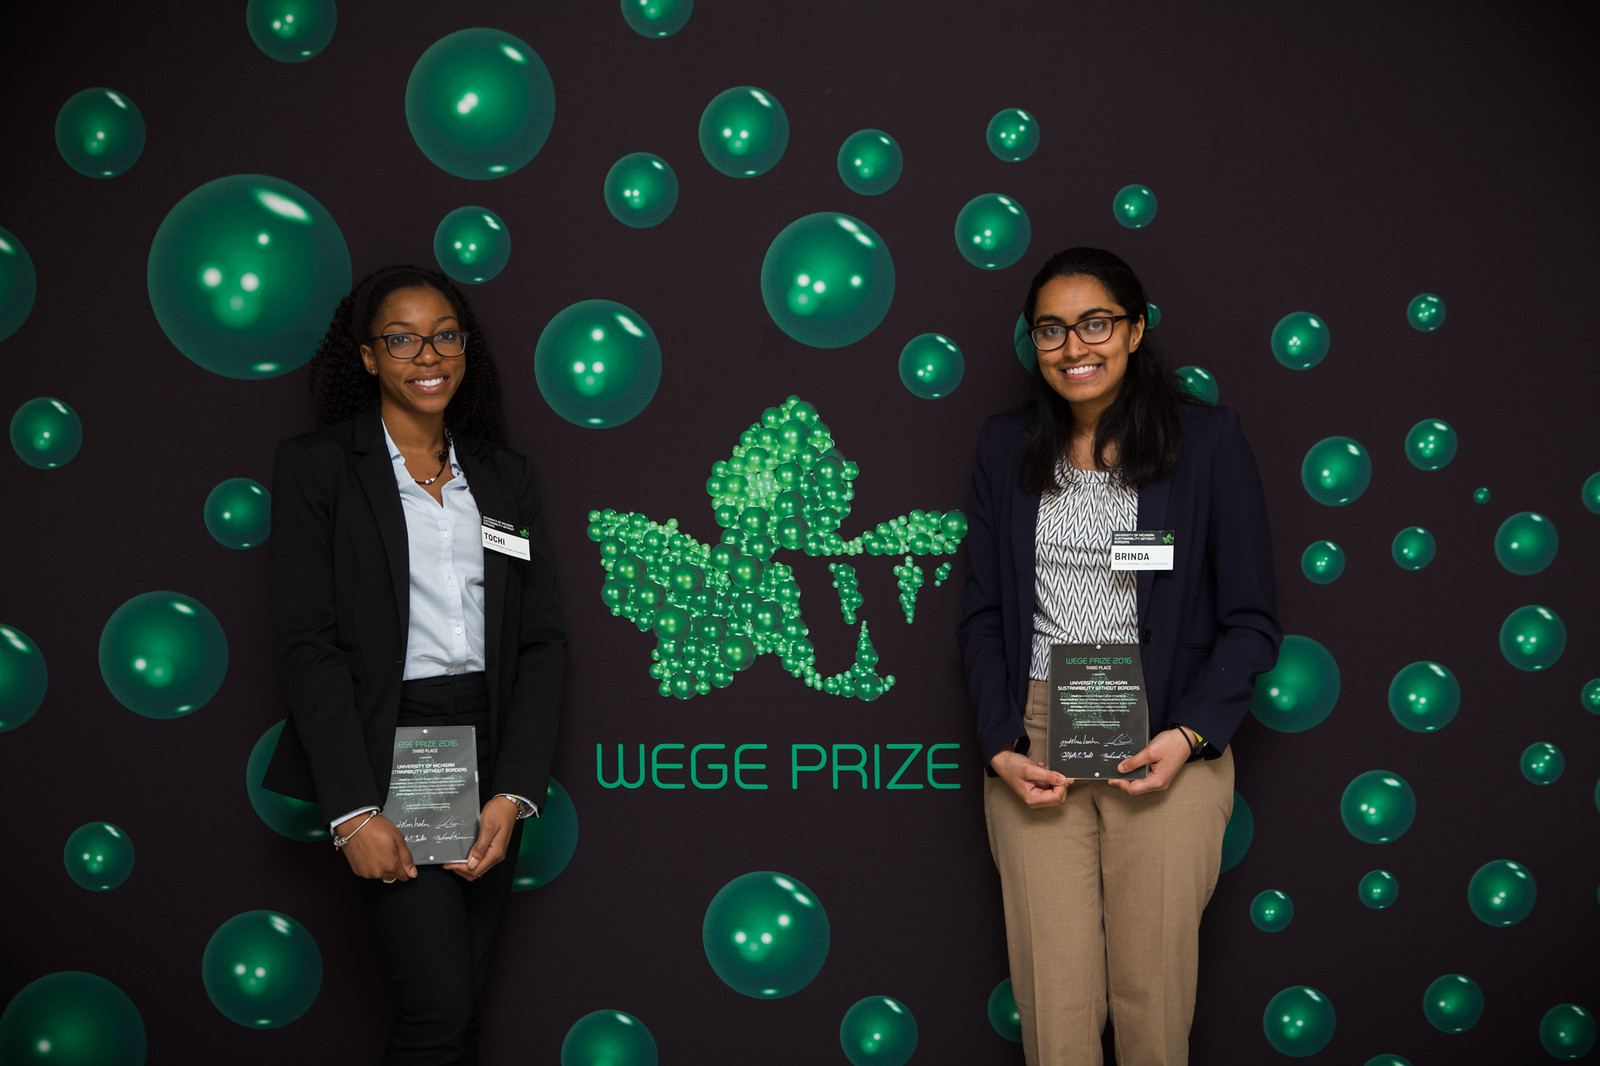 University of Michigan Sustainability Without Borders members Tochi Nwogu (left) and Brinda Yarlagadda (right) with their 3rd place trophies at the Wege Prize 2016 Awards